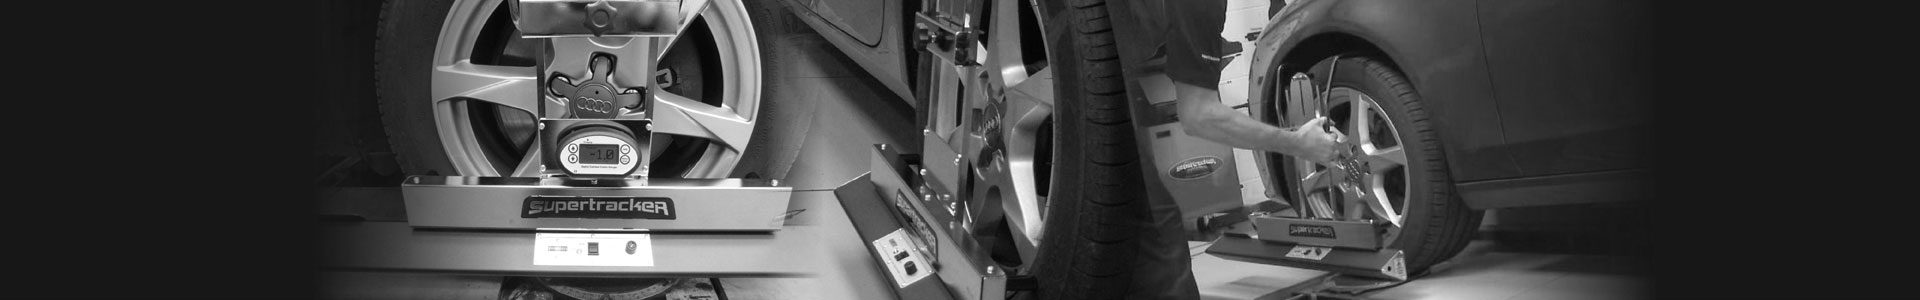 wheel-alignment-wide-bw